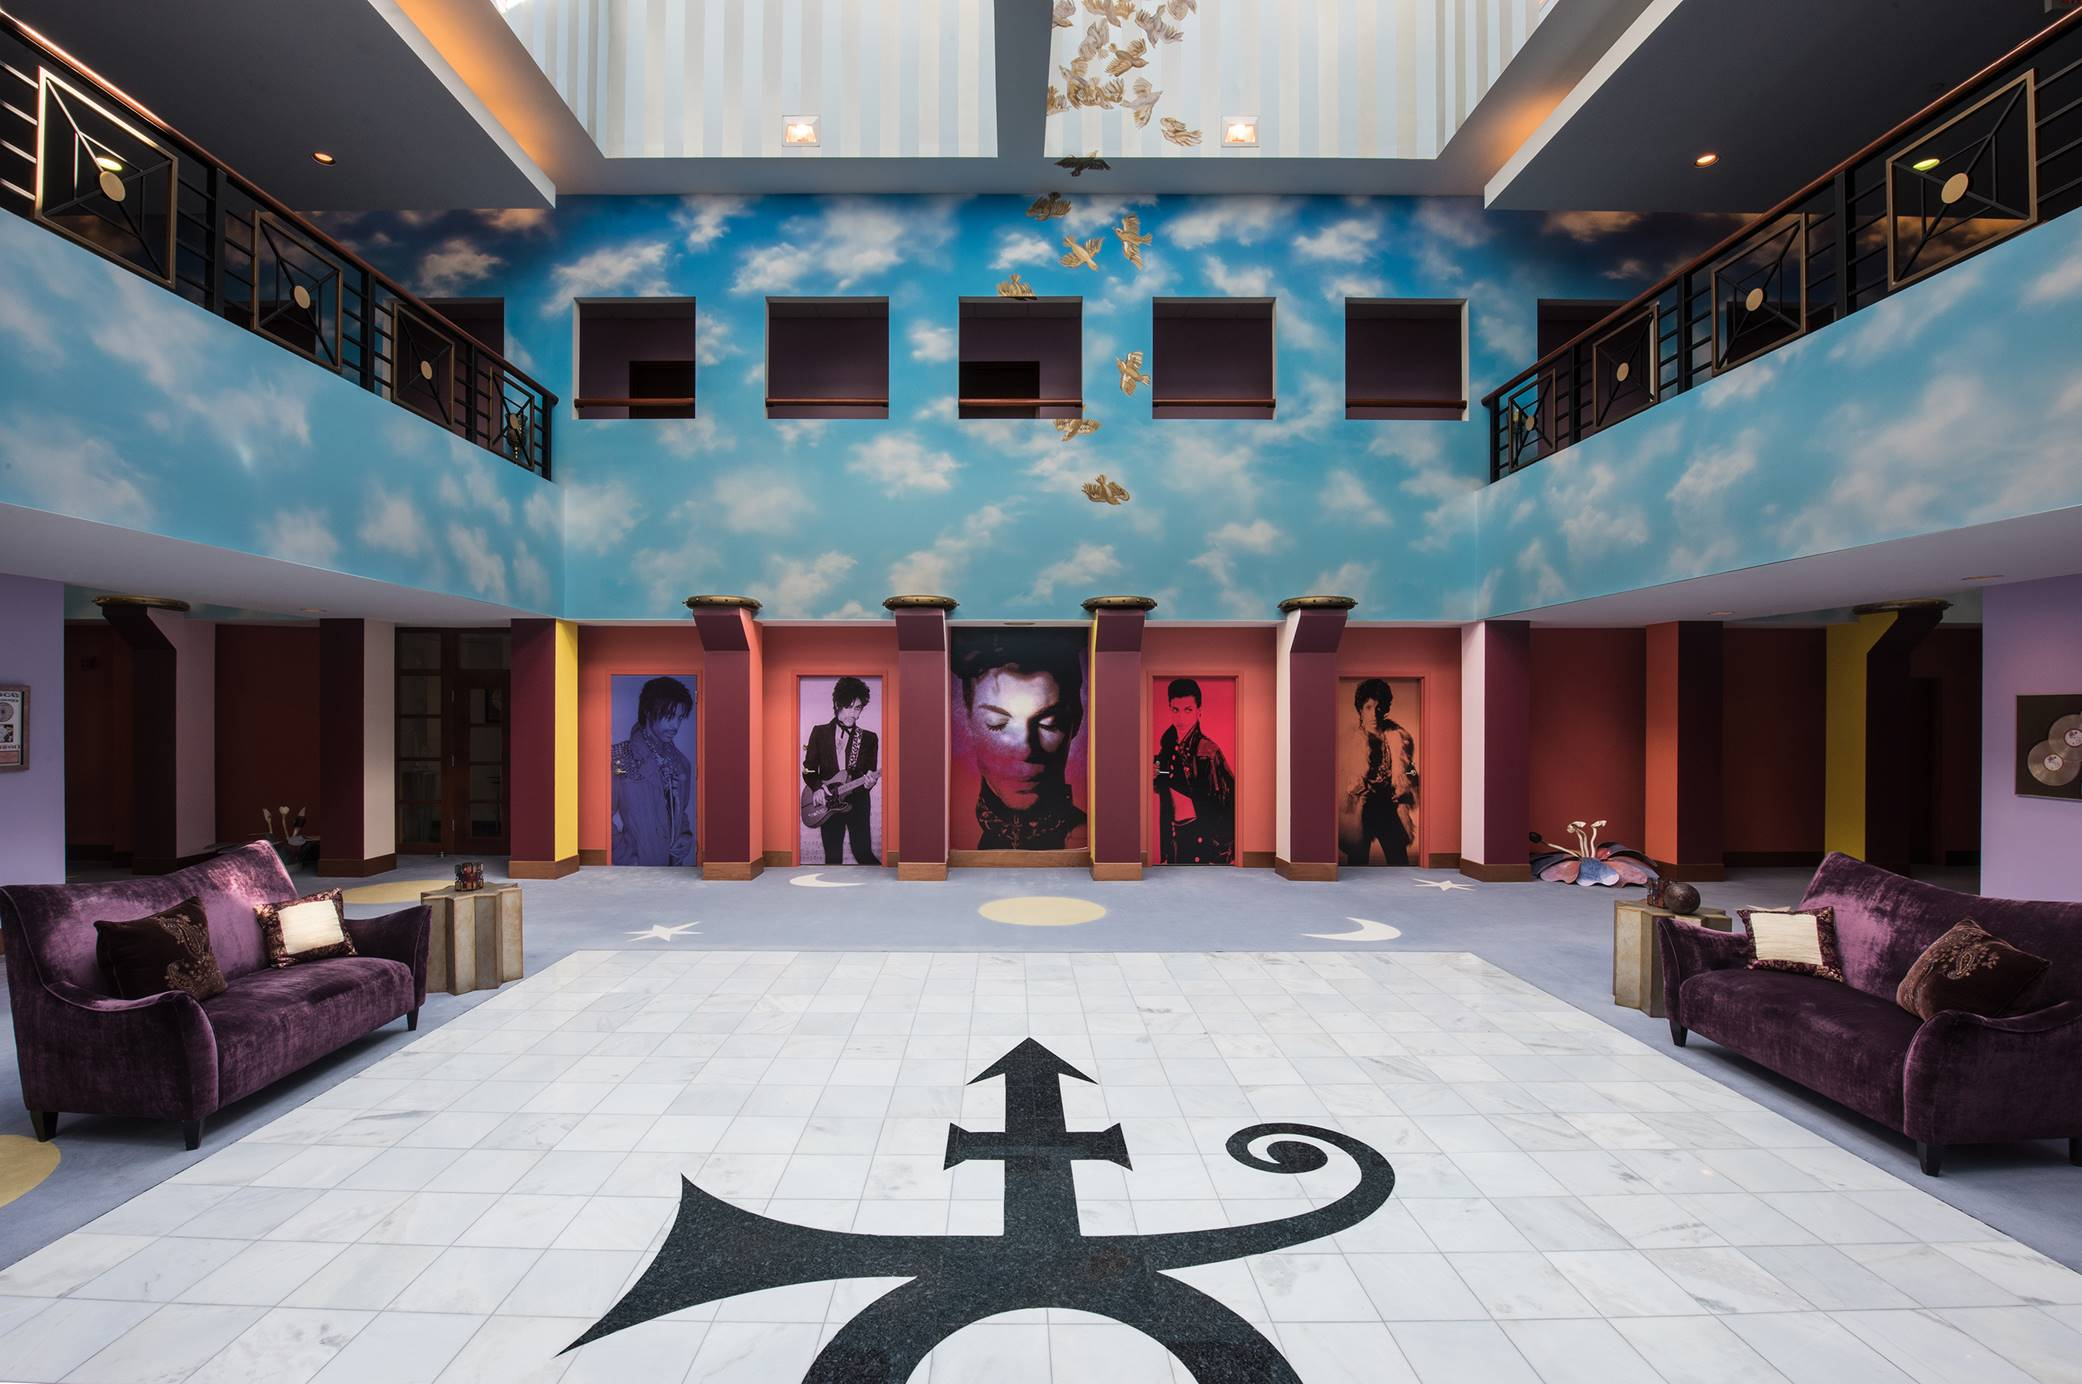 Paisley Park open to public tours from 6 October